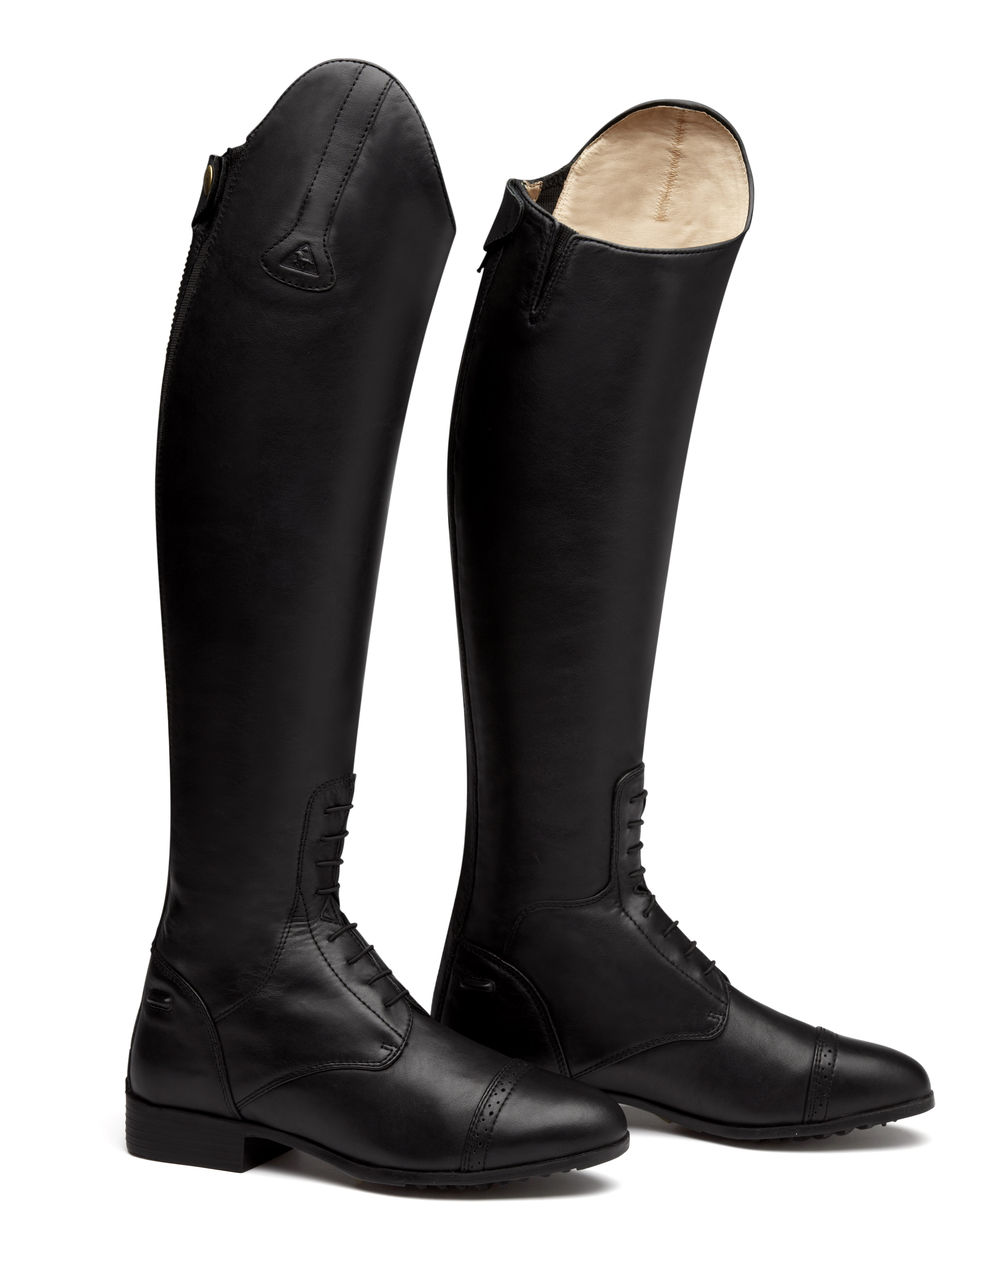 Mountain Horse Supreme Rider Boots